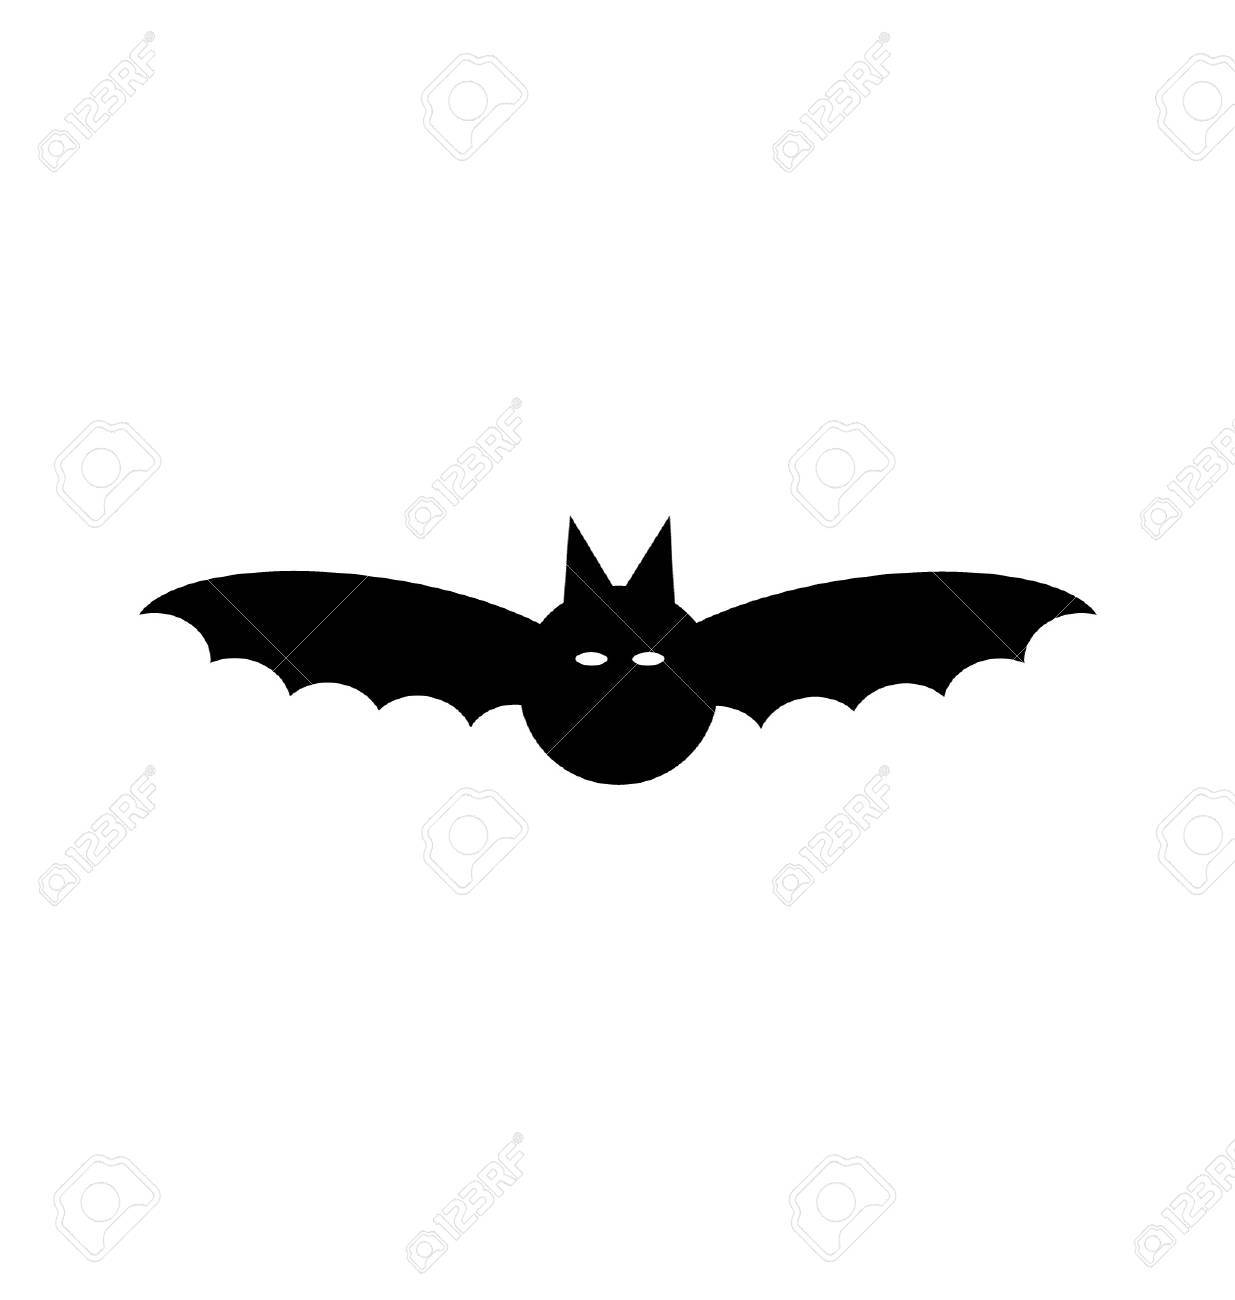 black halloween bat silhouette stock vector 32232651